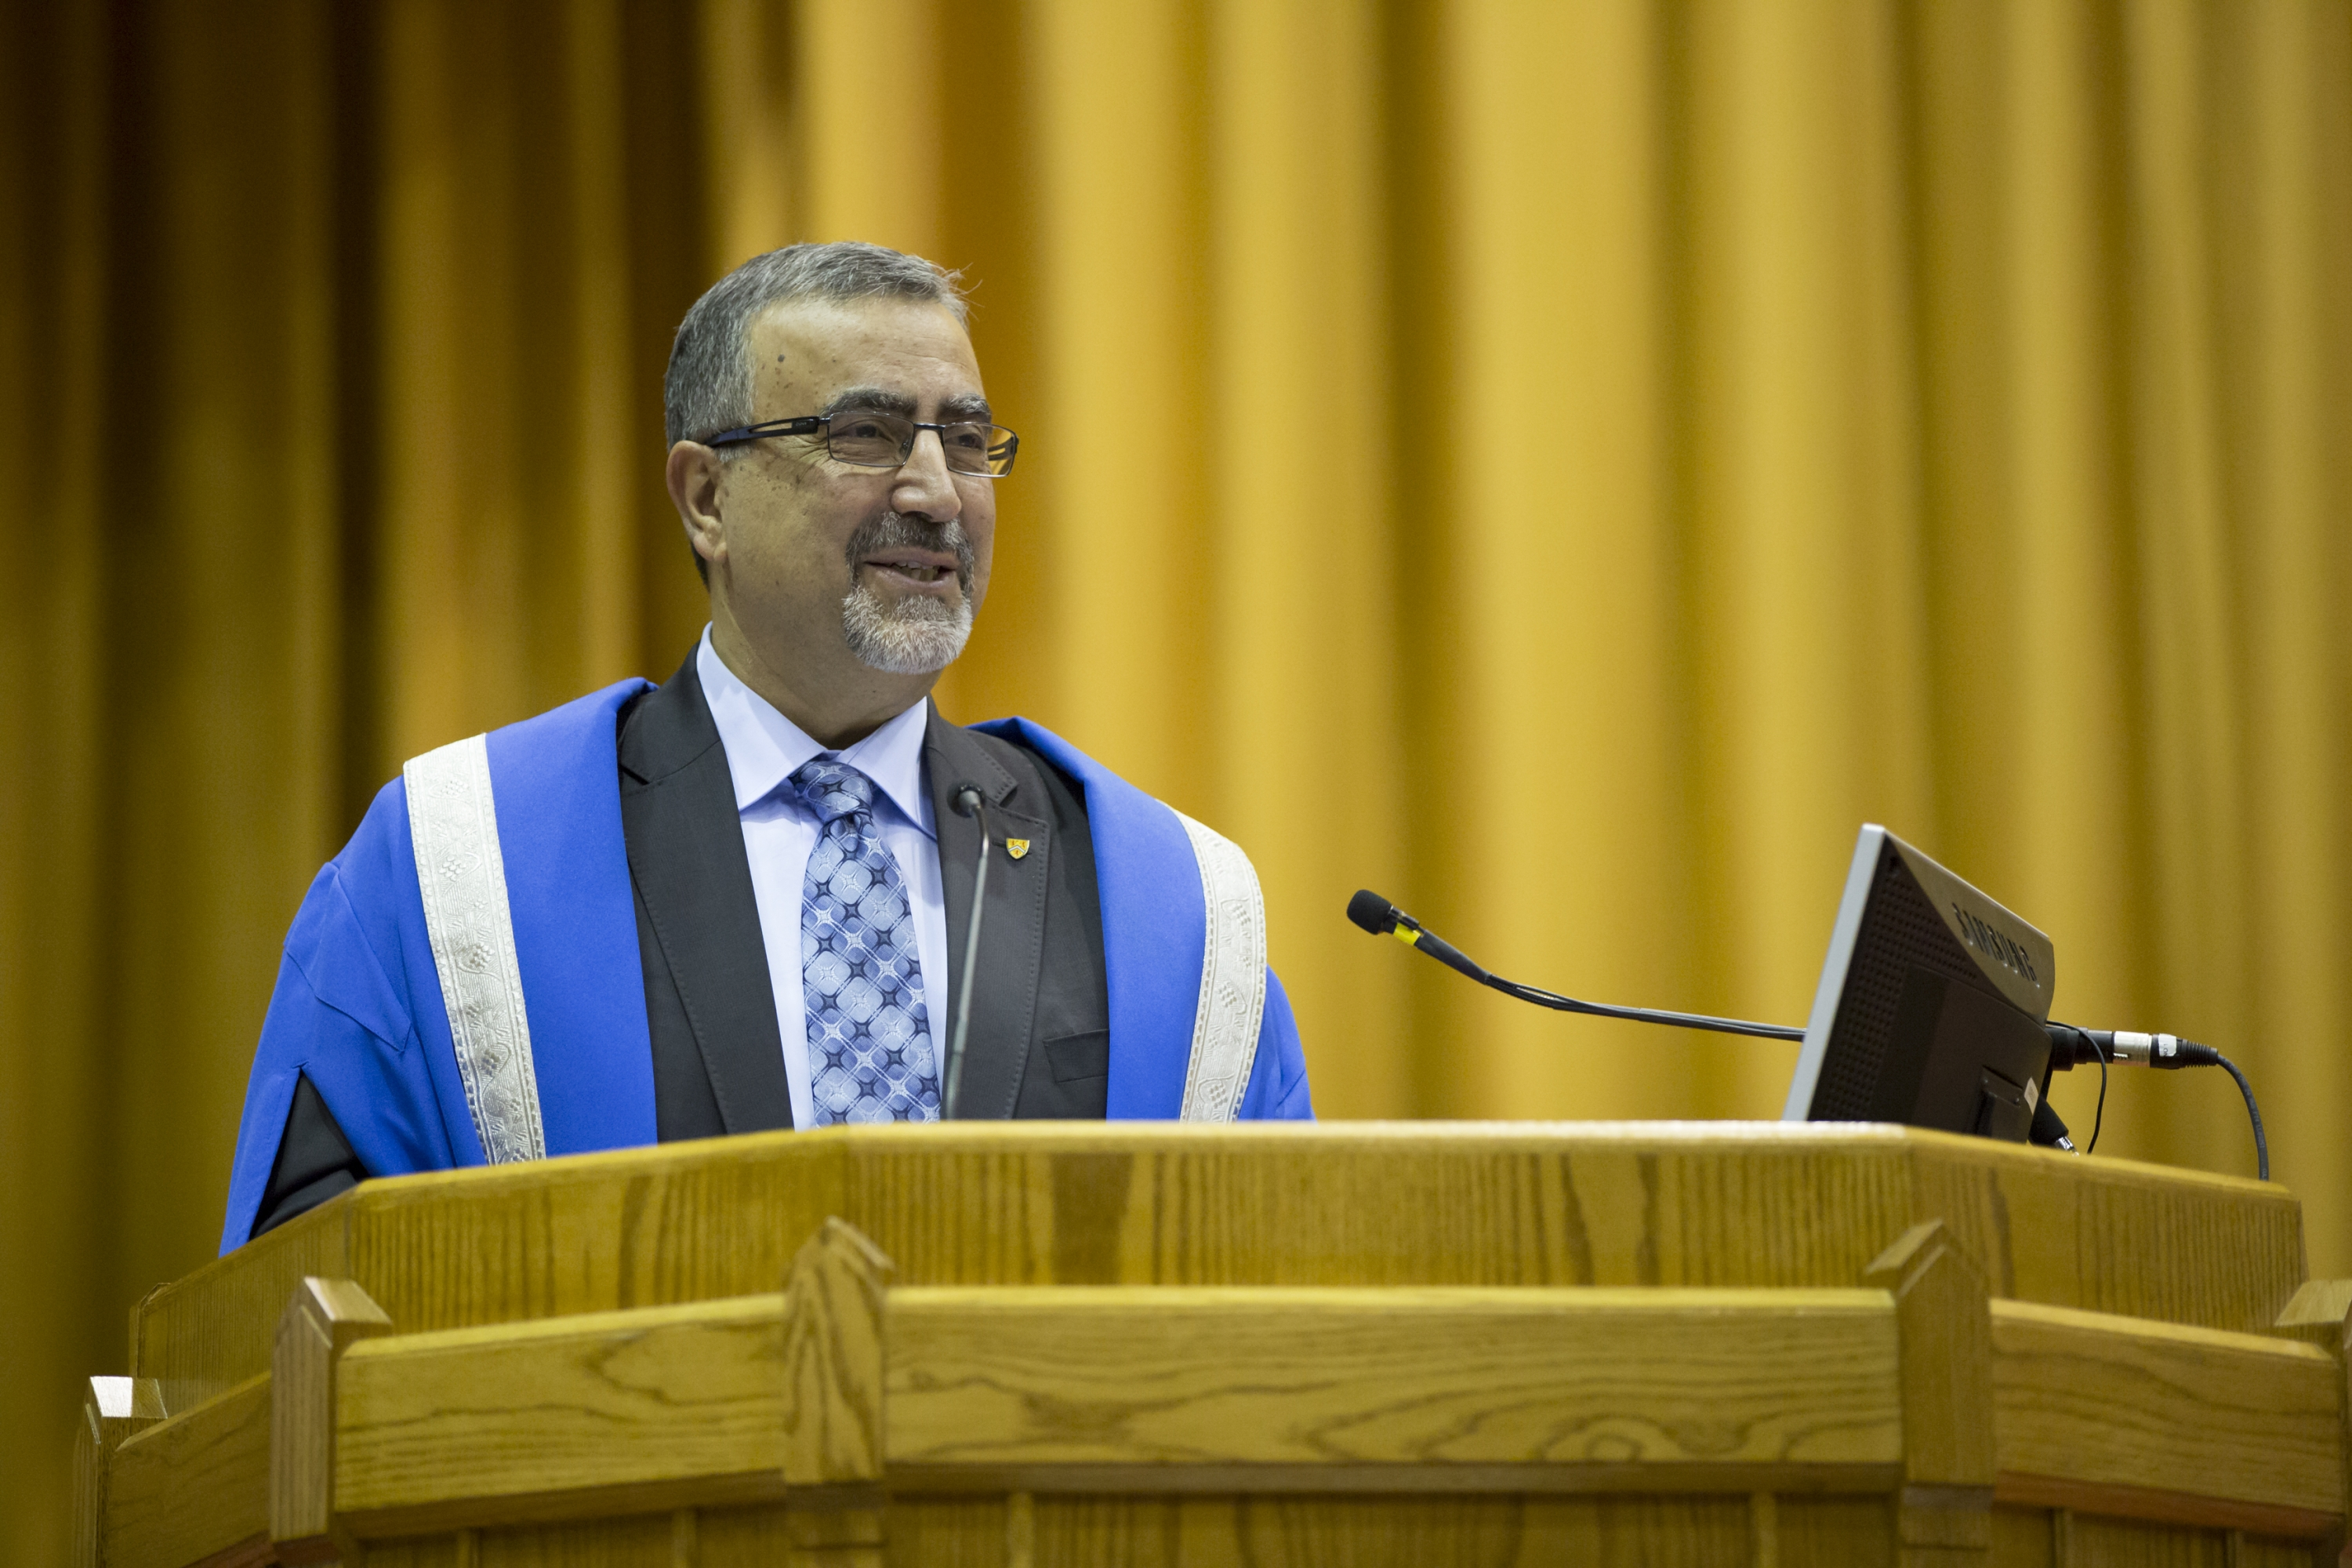 President Feridun Hamdullahpur giving Convocation speech